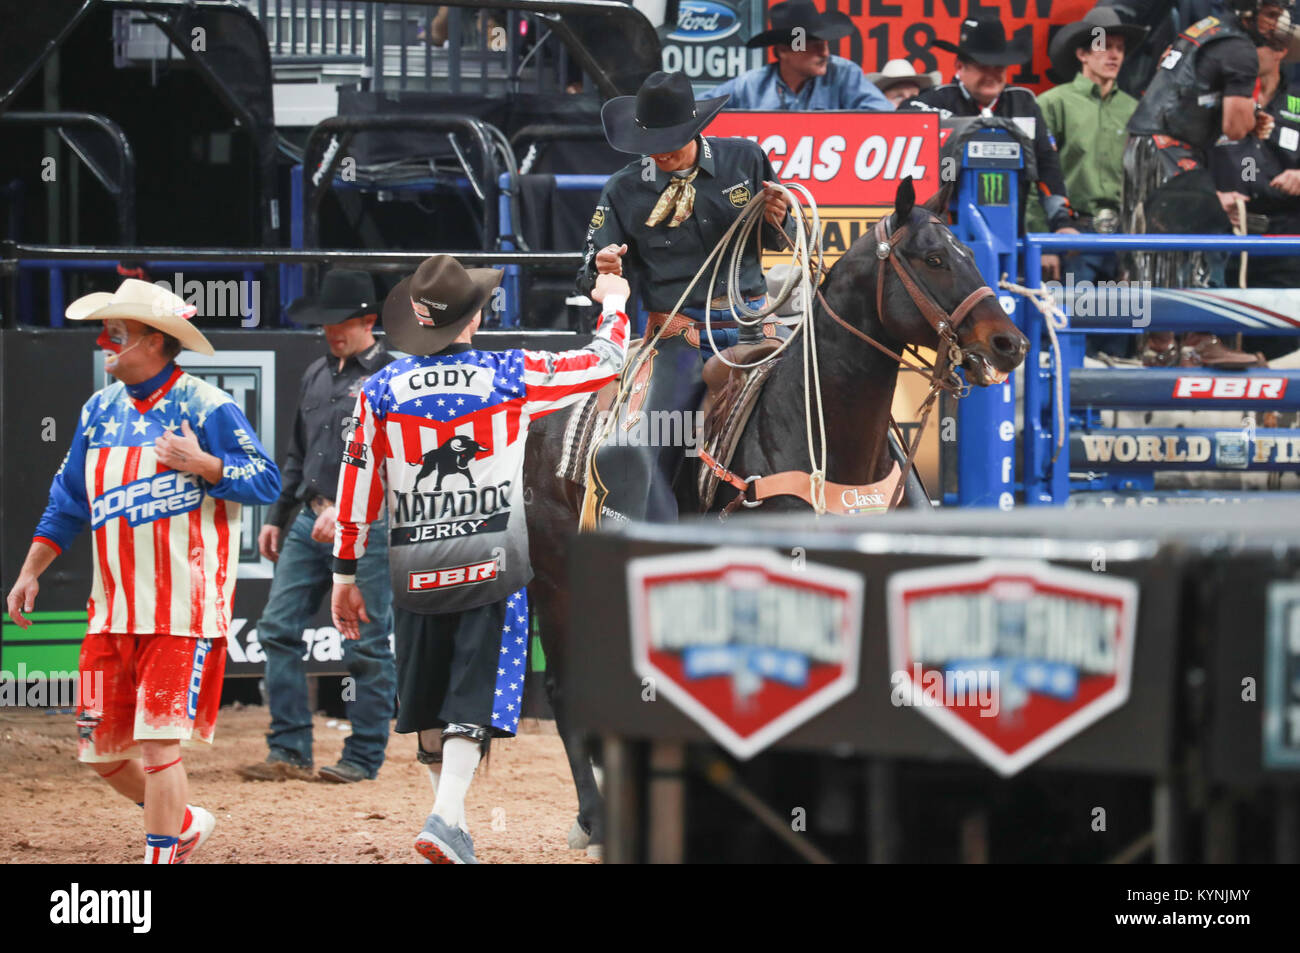 Rodeo clowns await action in the arena during the 2017 Professional